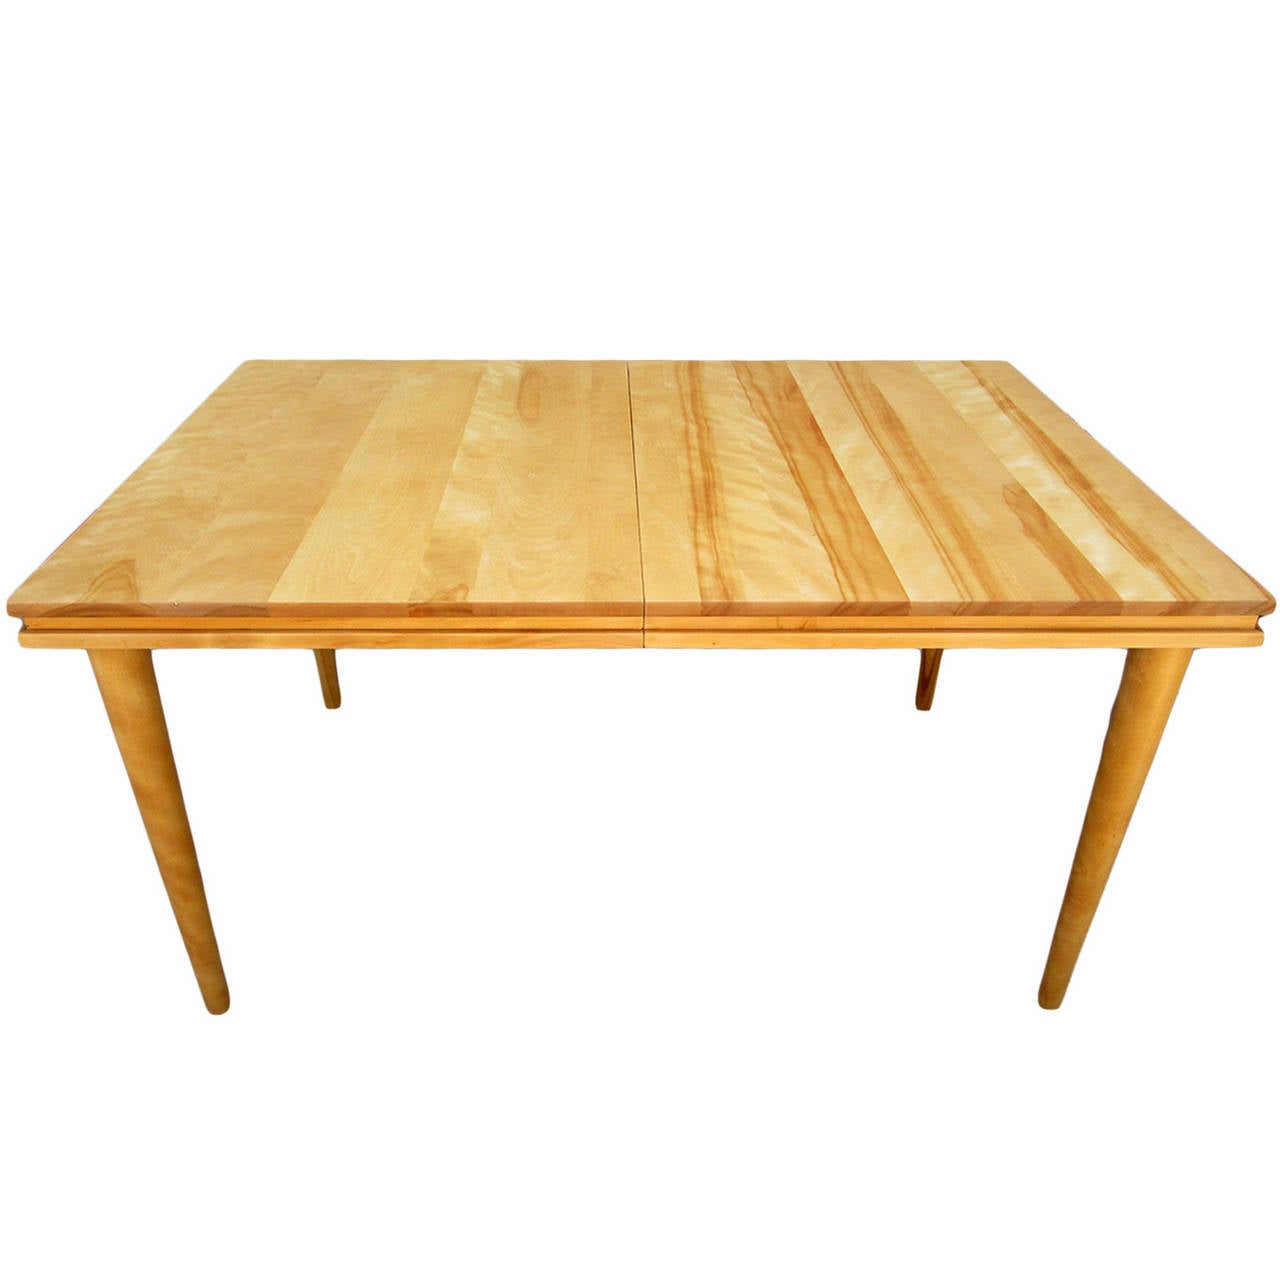 Russel Wright Solid Maple Dining Table At 1Stdibs Throughout Best And Newest Gaspard Maple Solid Wood Pedestal Dining Tables (View 7 of 15)